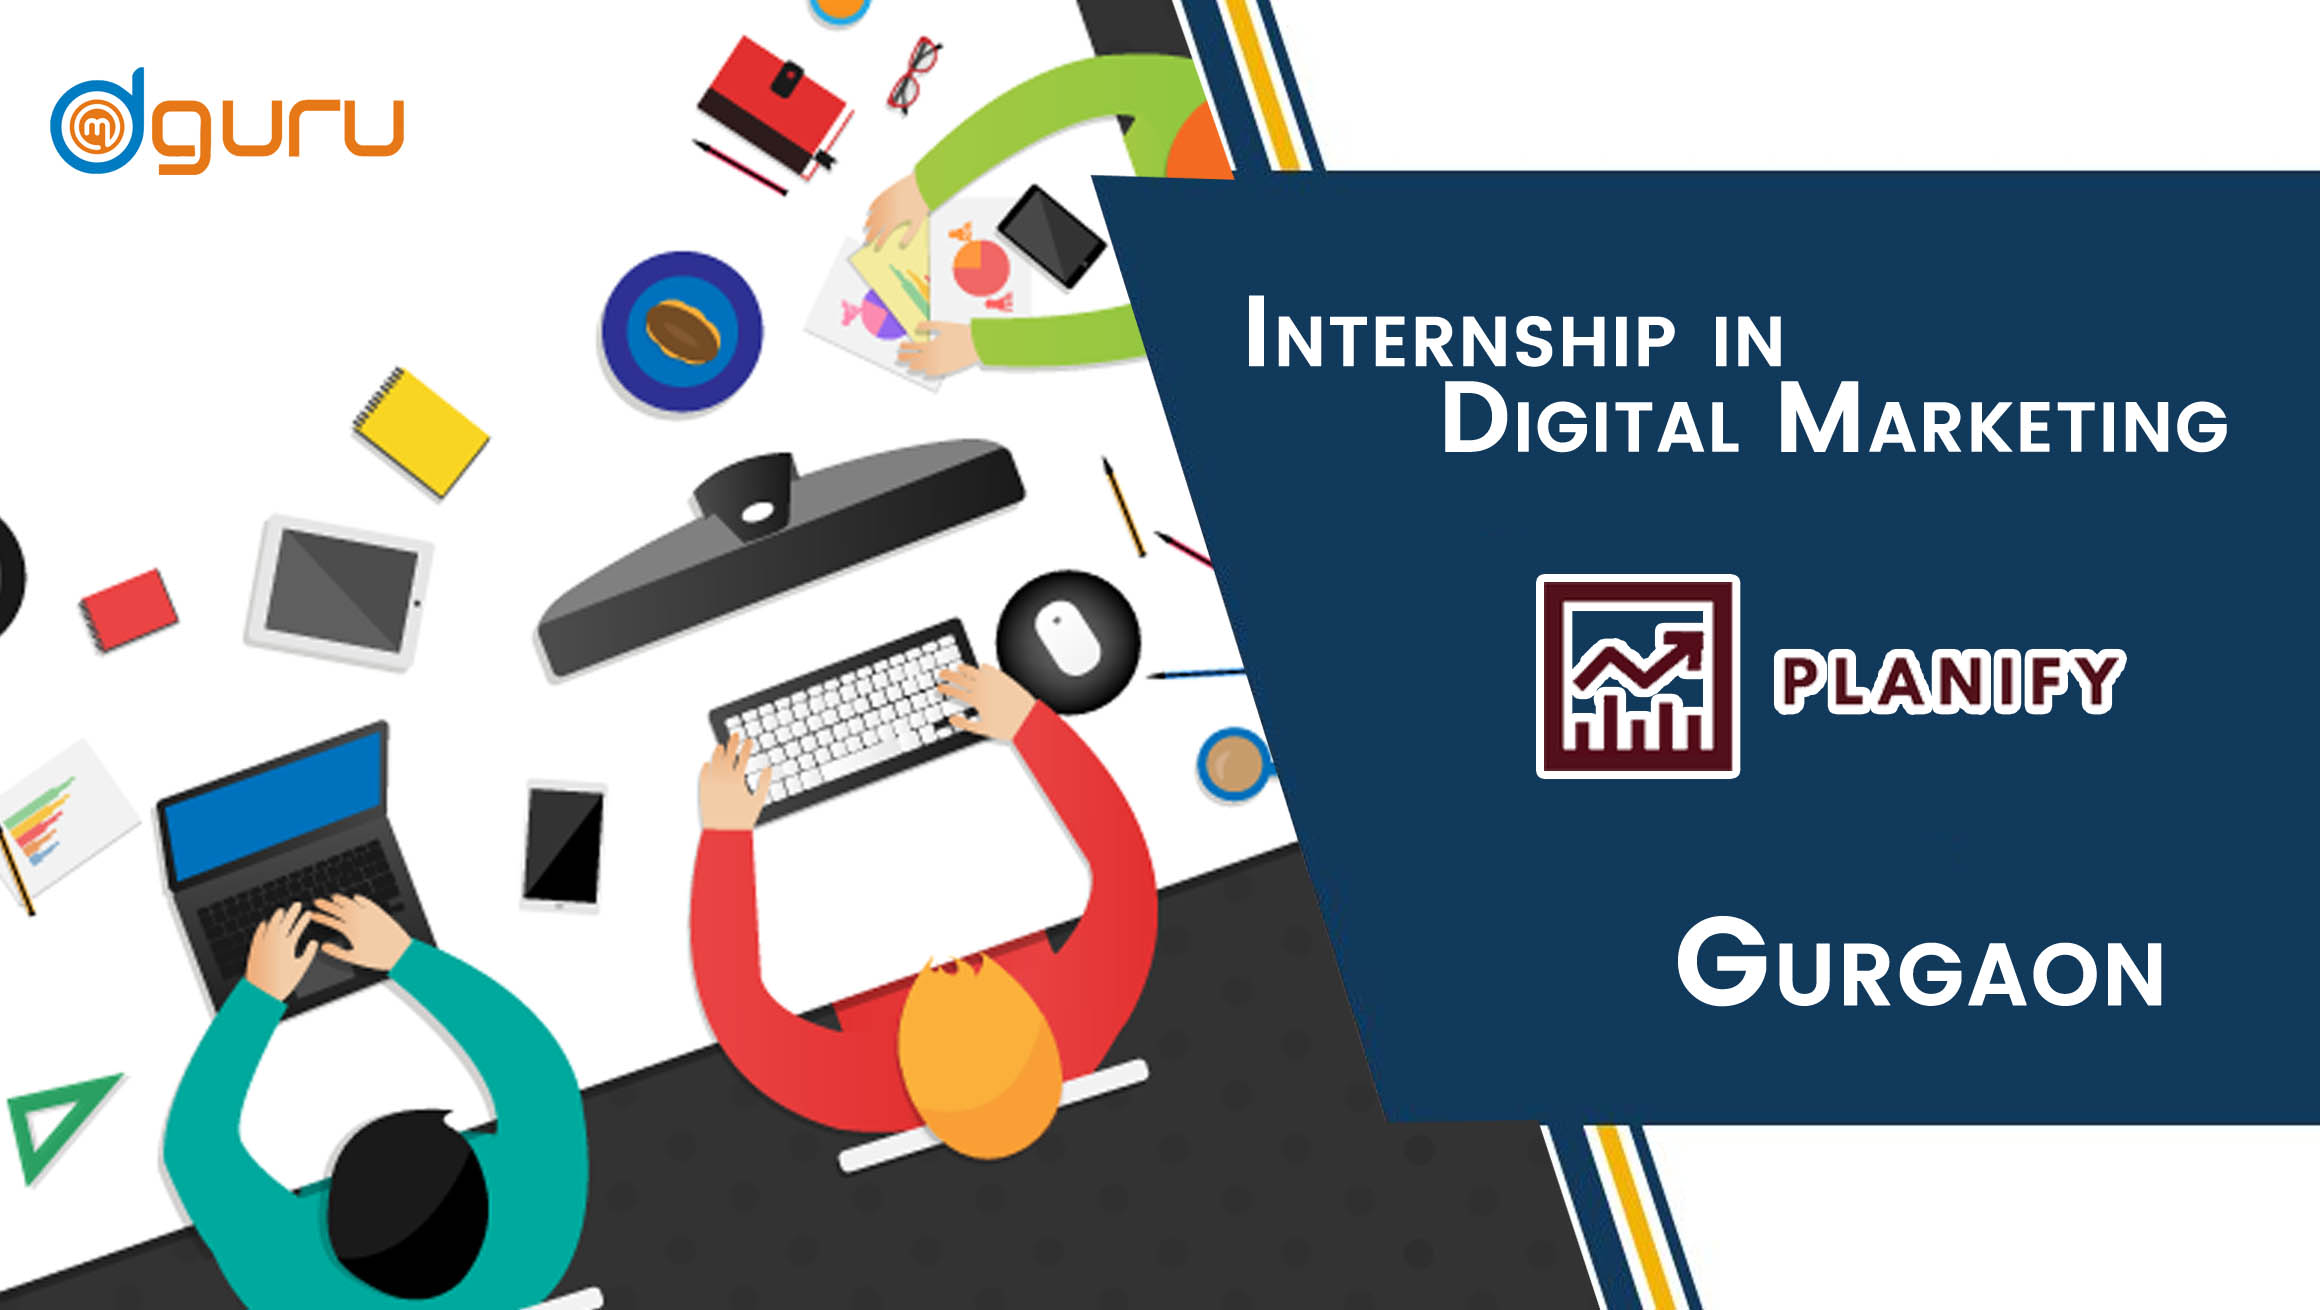 Digital Marketing Internship at Planify Gurgaon, India